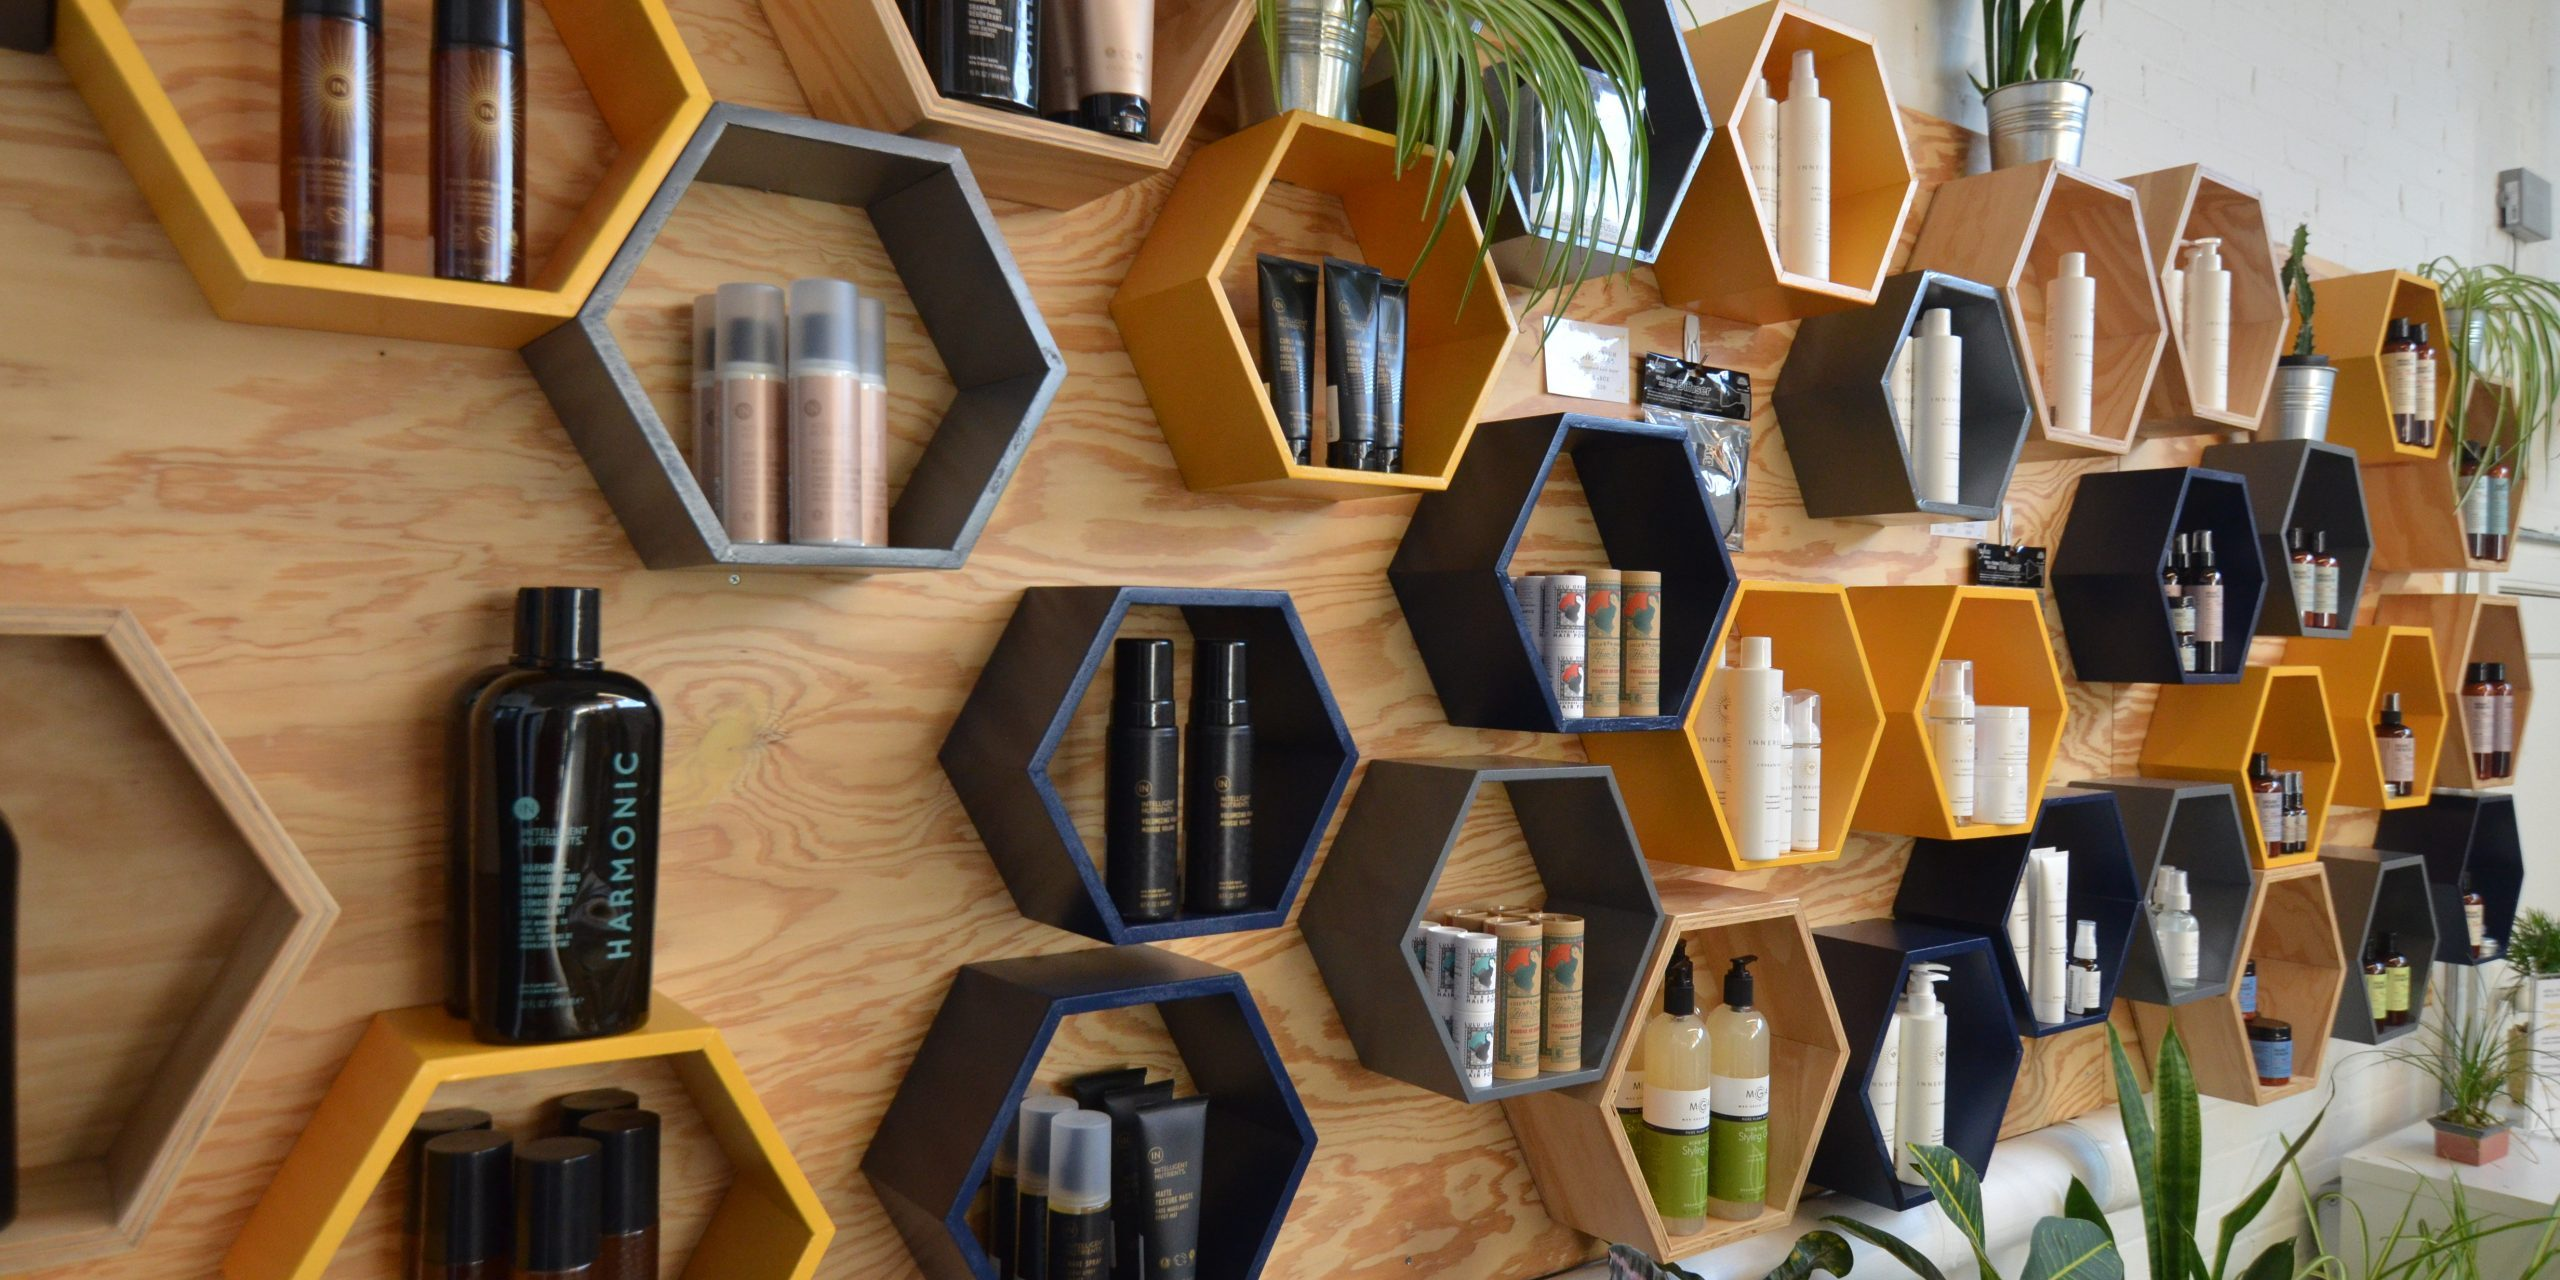 10 Twin Cities Salons Using Safer Products